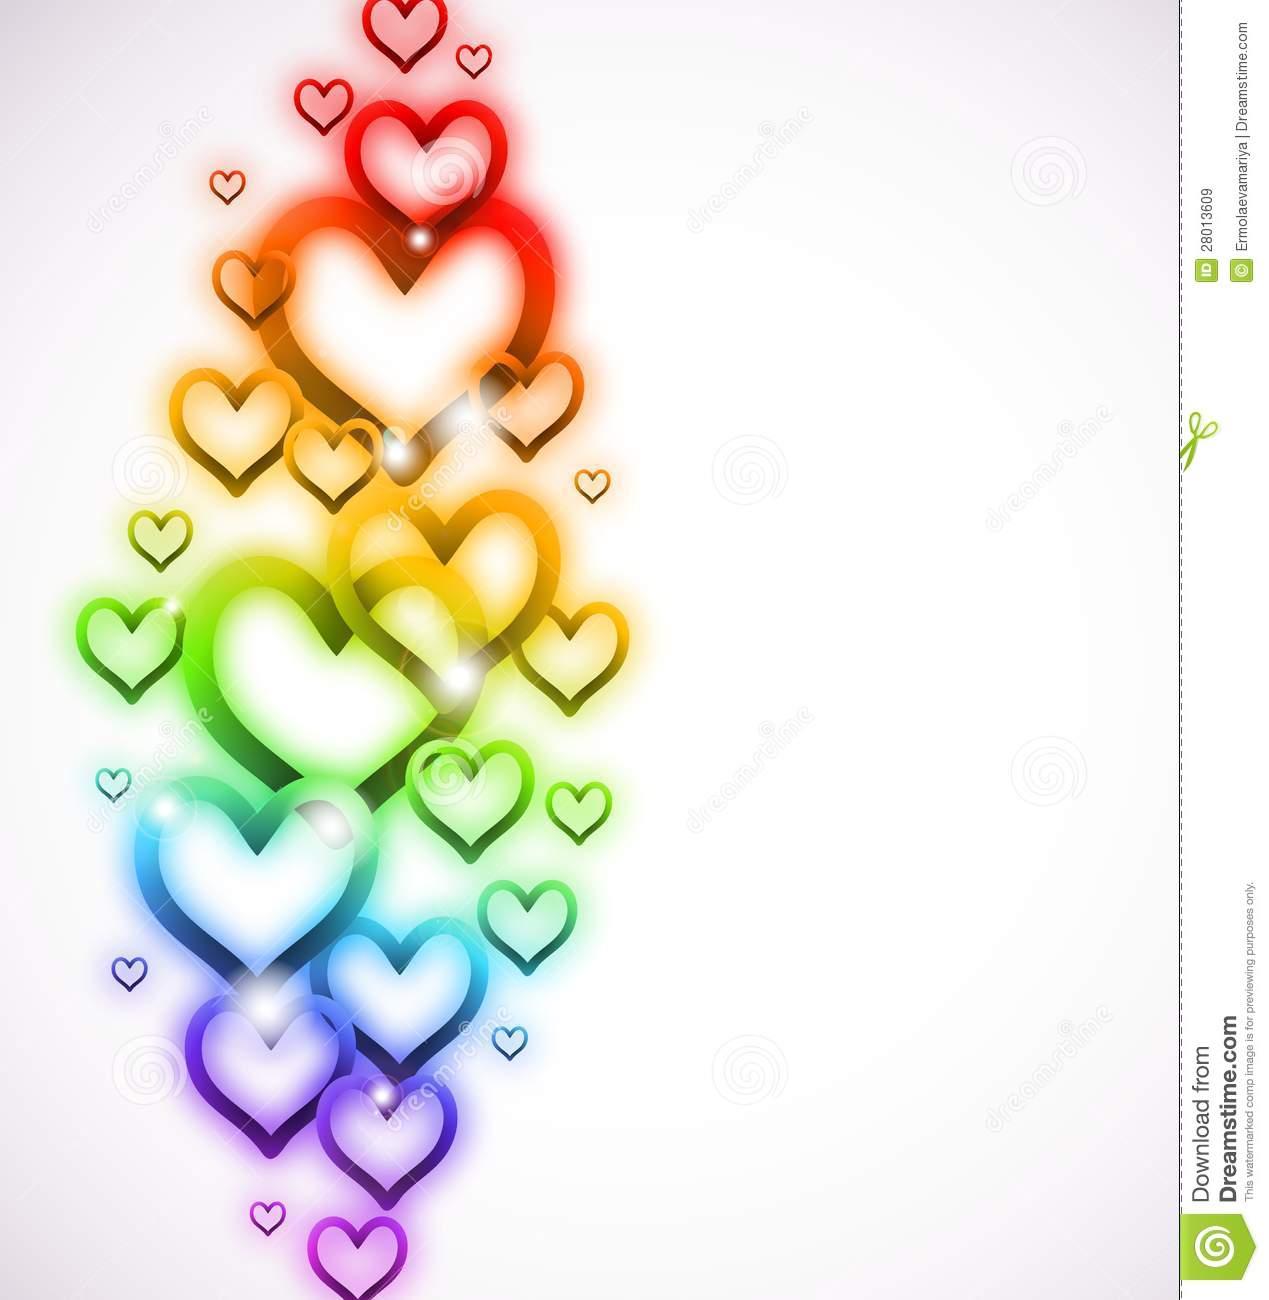 Rainbow Heart With Sparkles On White Vector Royalty Free